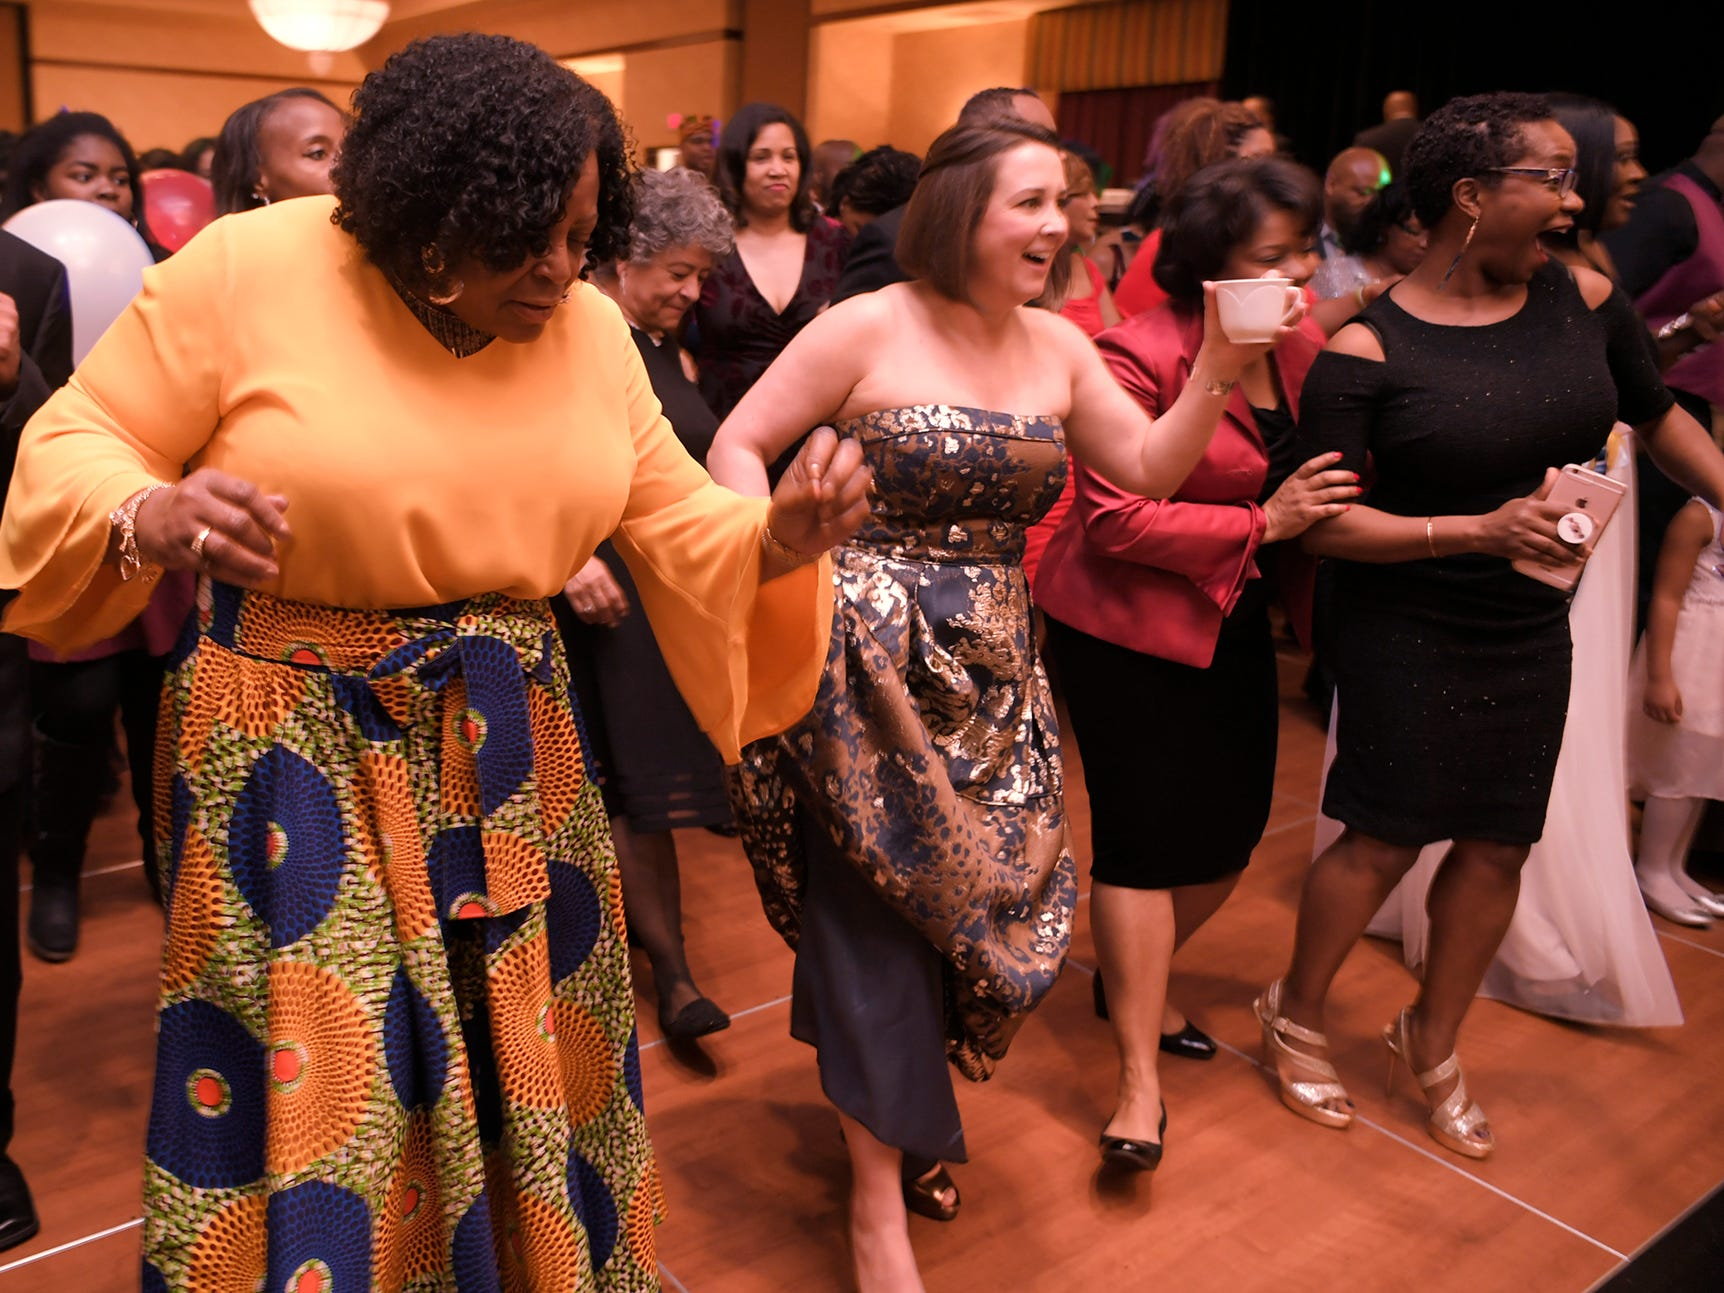 People line dance at the African American Heritage Society's 18th Annual Black Tie Affair at the Embassy Suites in Franklin on Sat., Feb. 2, 2019.